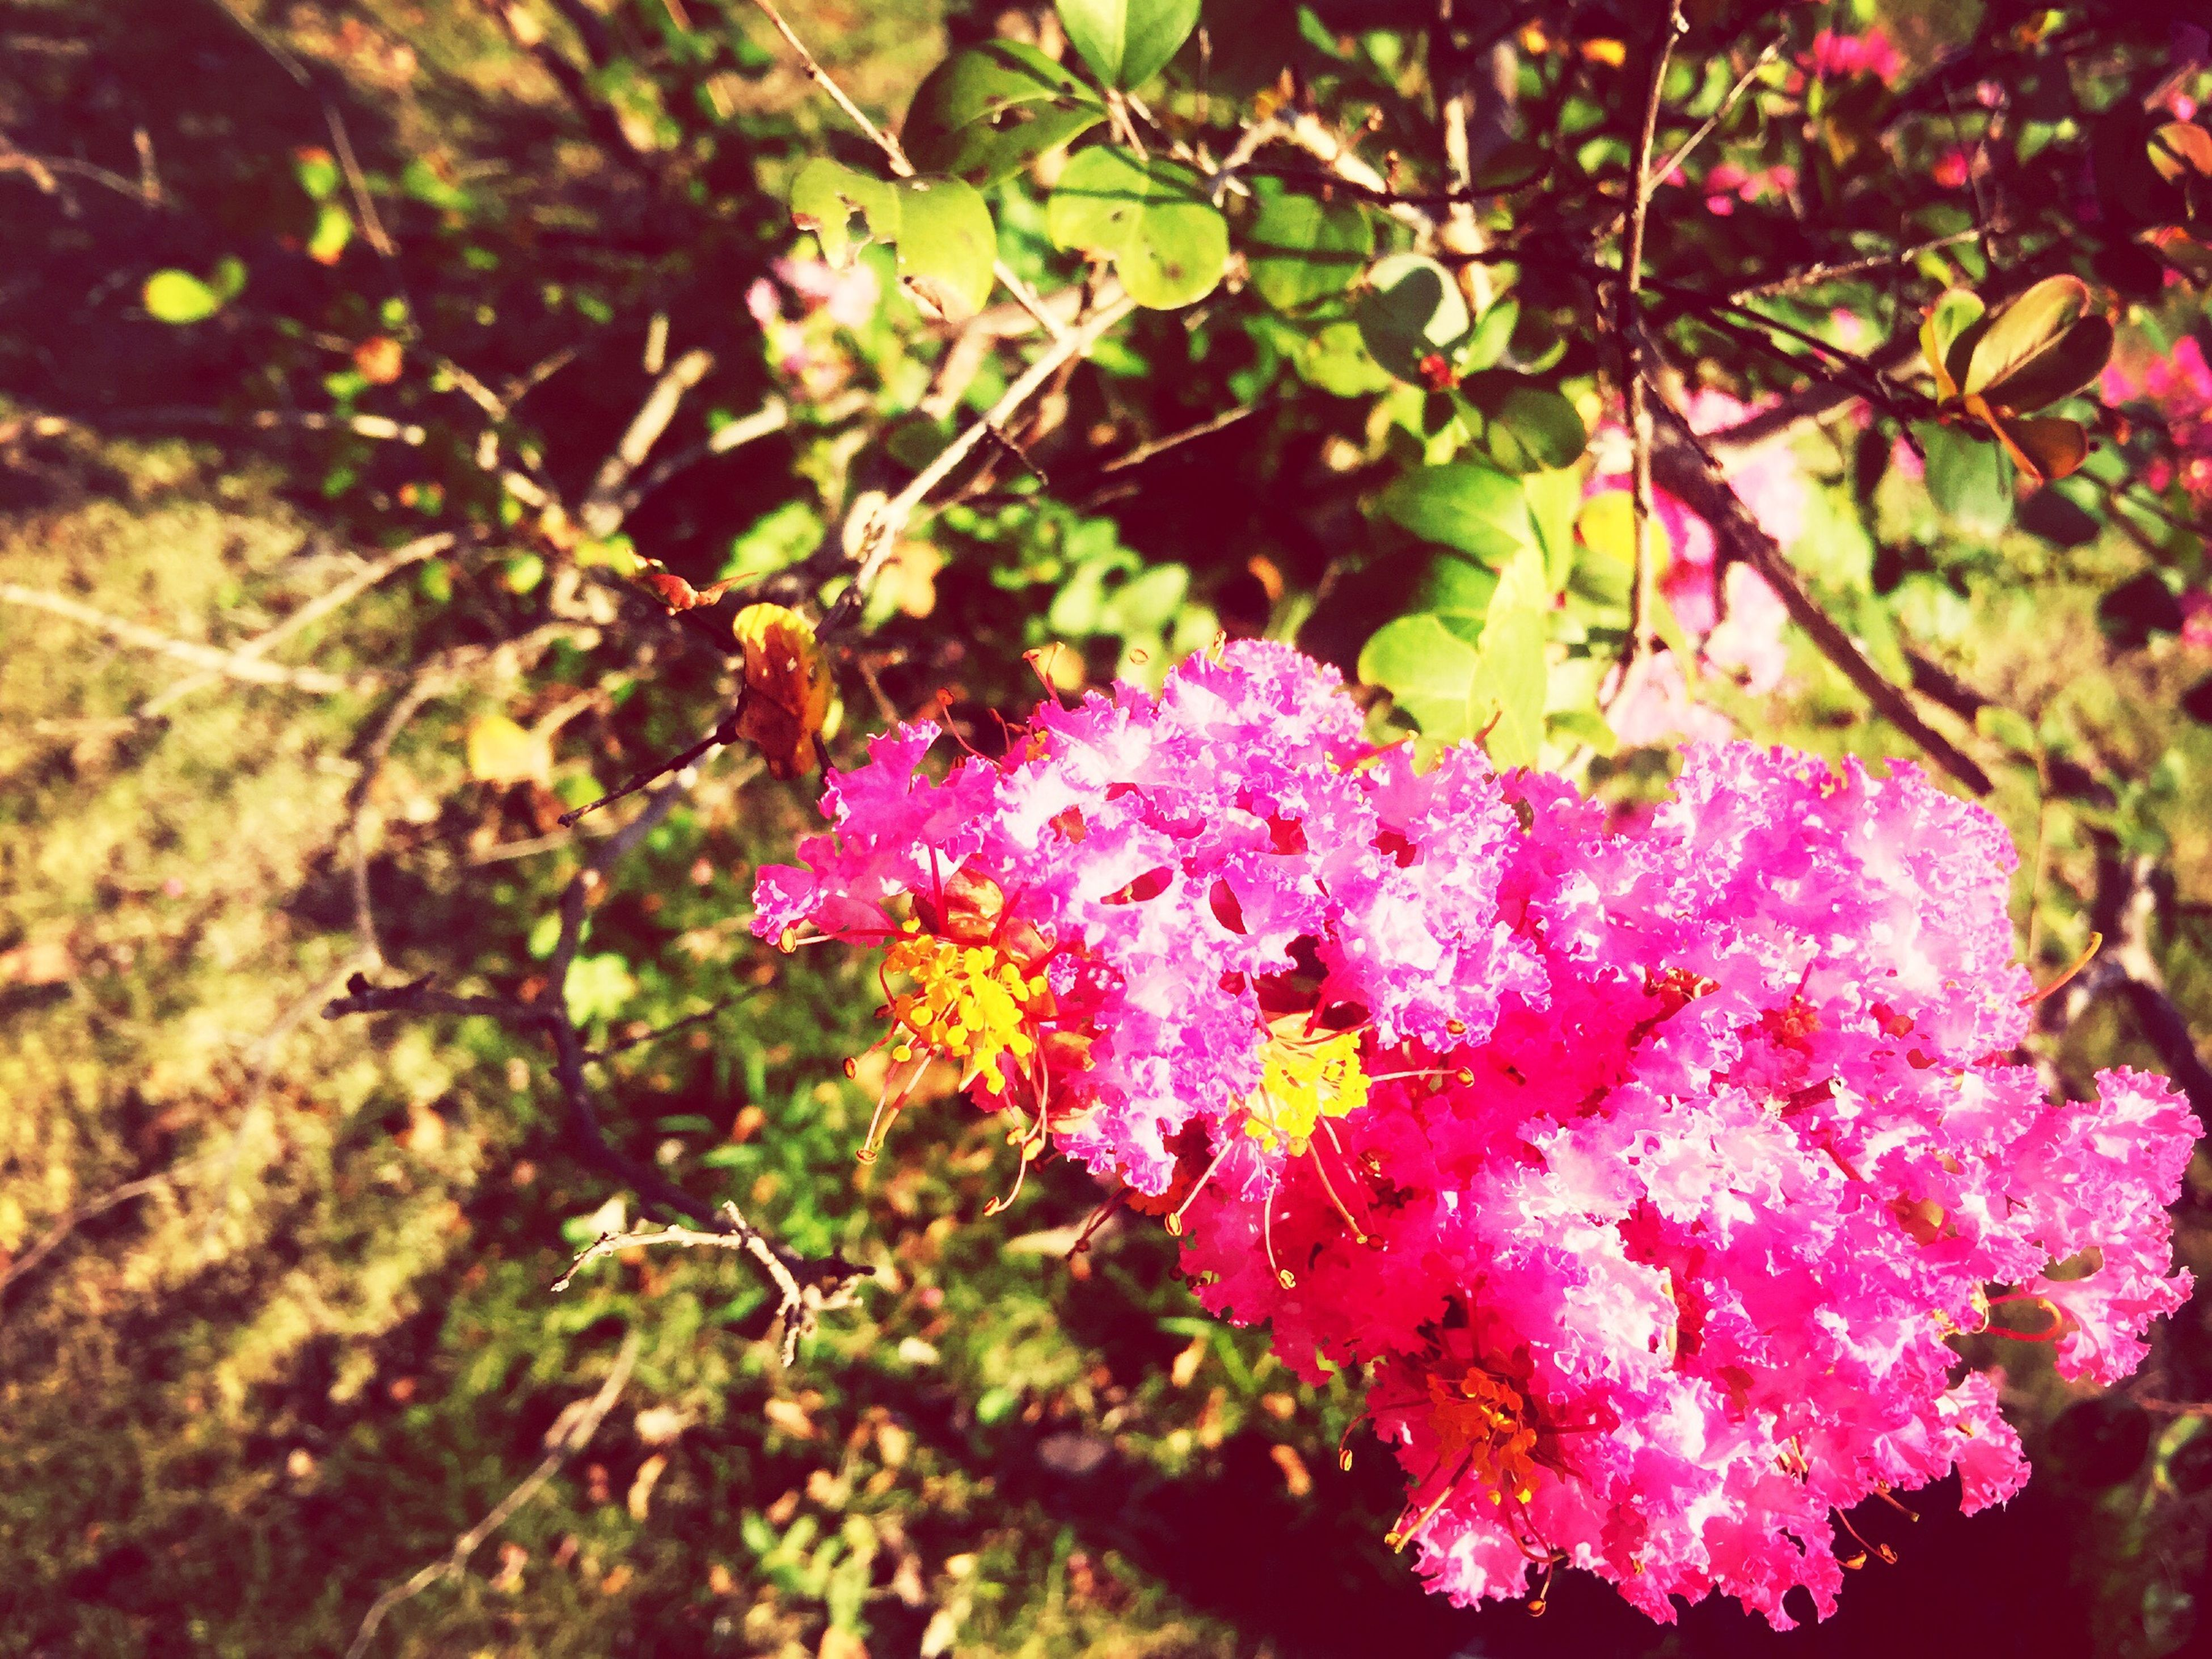 flower, growth, pink color, freshness, branch, tree, beauty in nature, nature, fragility, blossom, leaf, pink, in bloom, petal, blooming, outdoors, day, close-up, season, focus on foreground, no people, tranquility, botany, cherry tree, plant, selective focus, twig, growing, scenics, tranquil scene